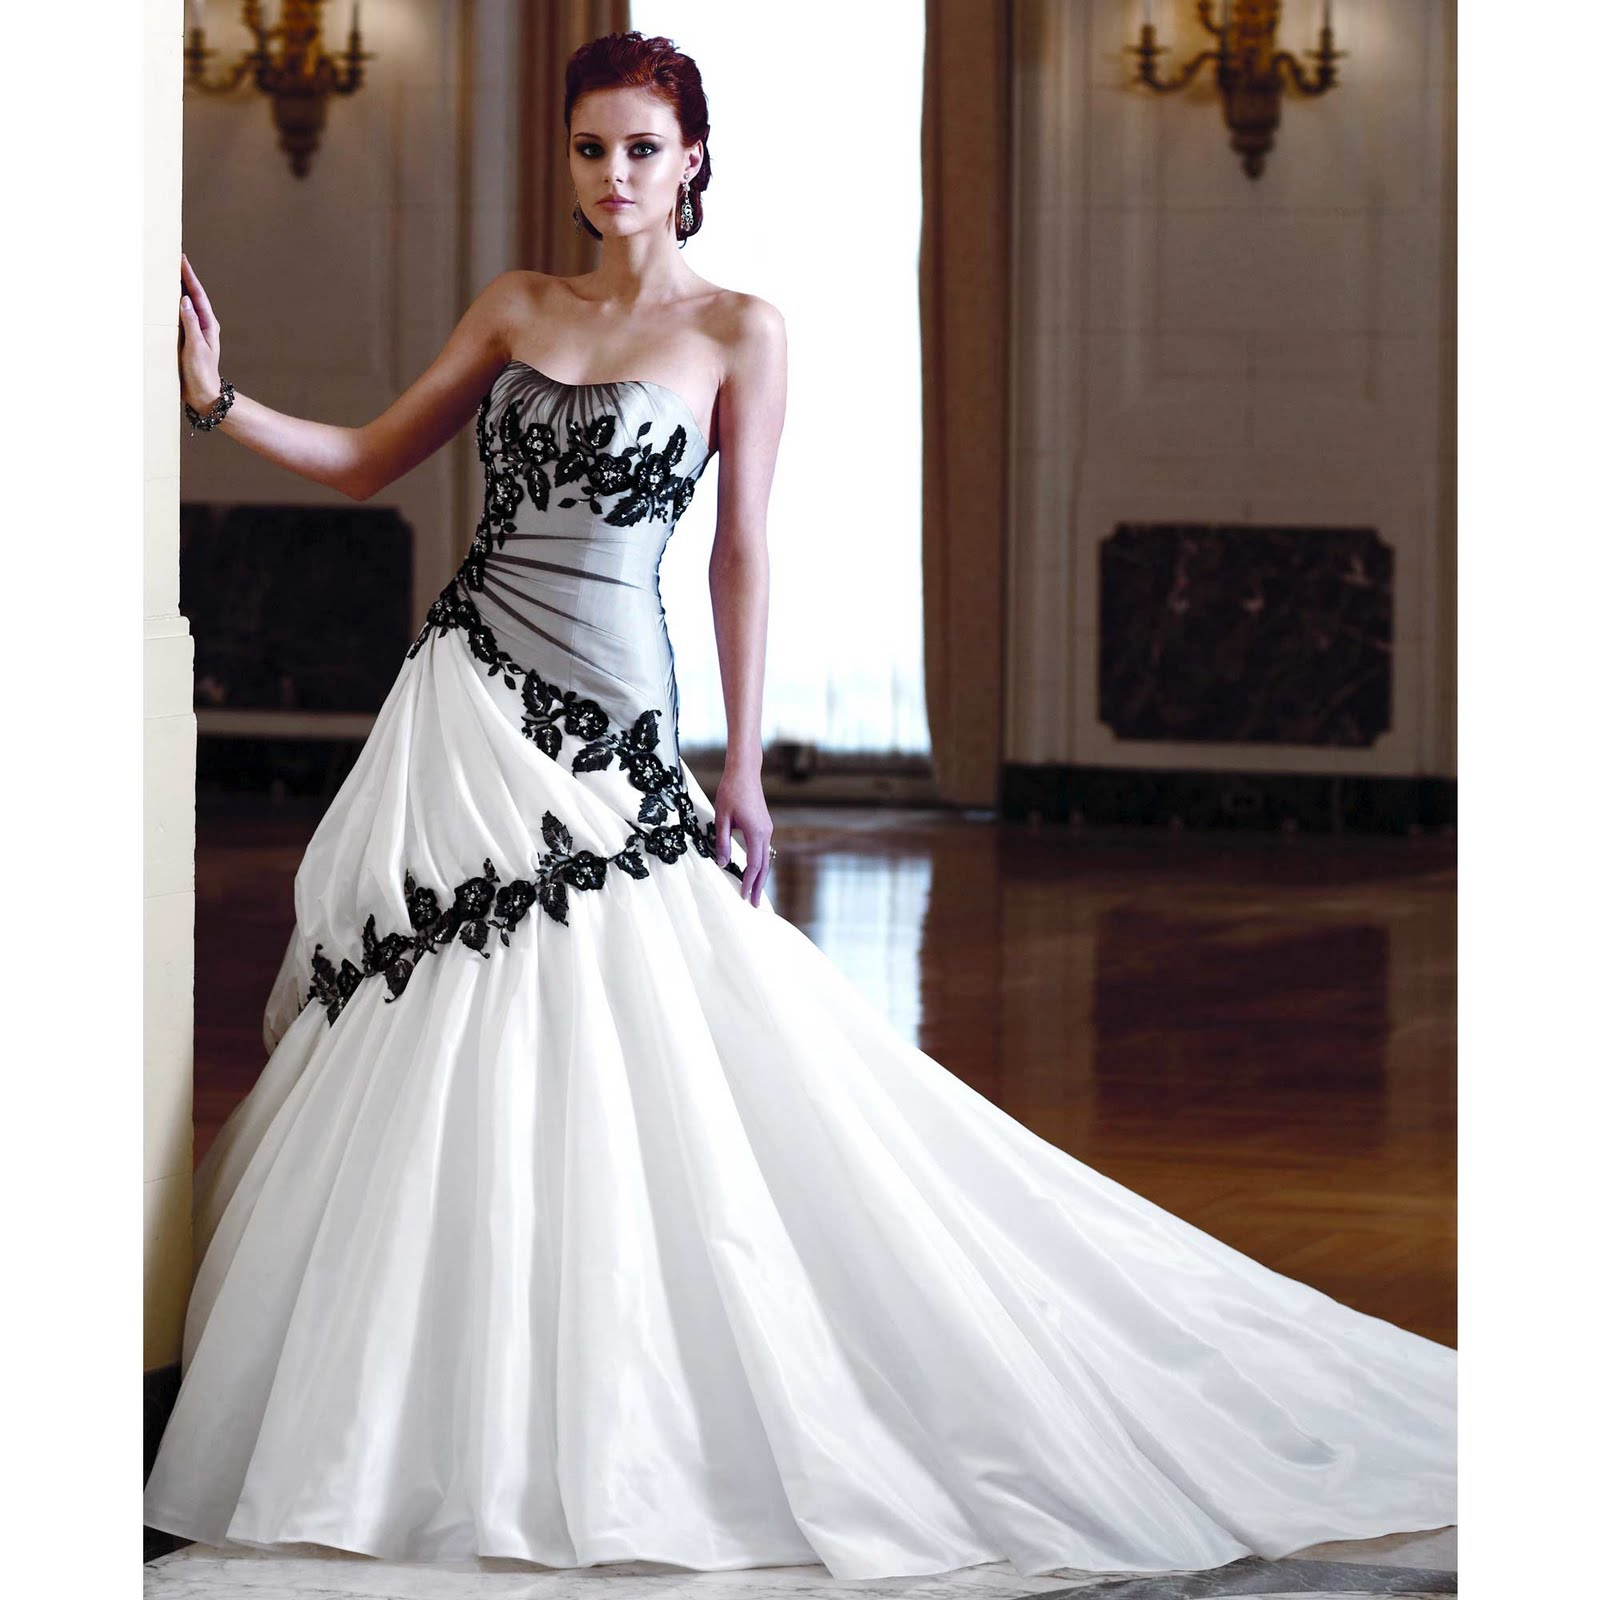 Elegant wedding dress is a